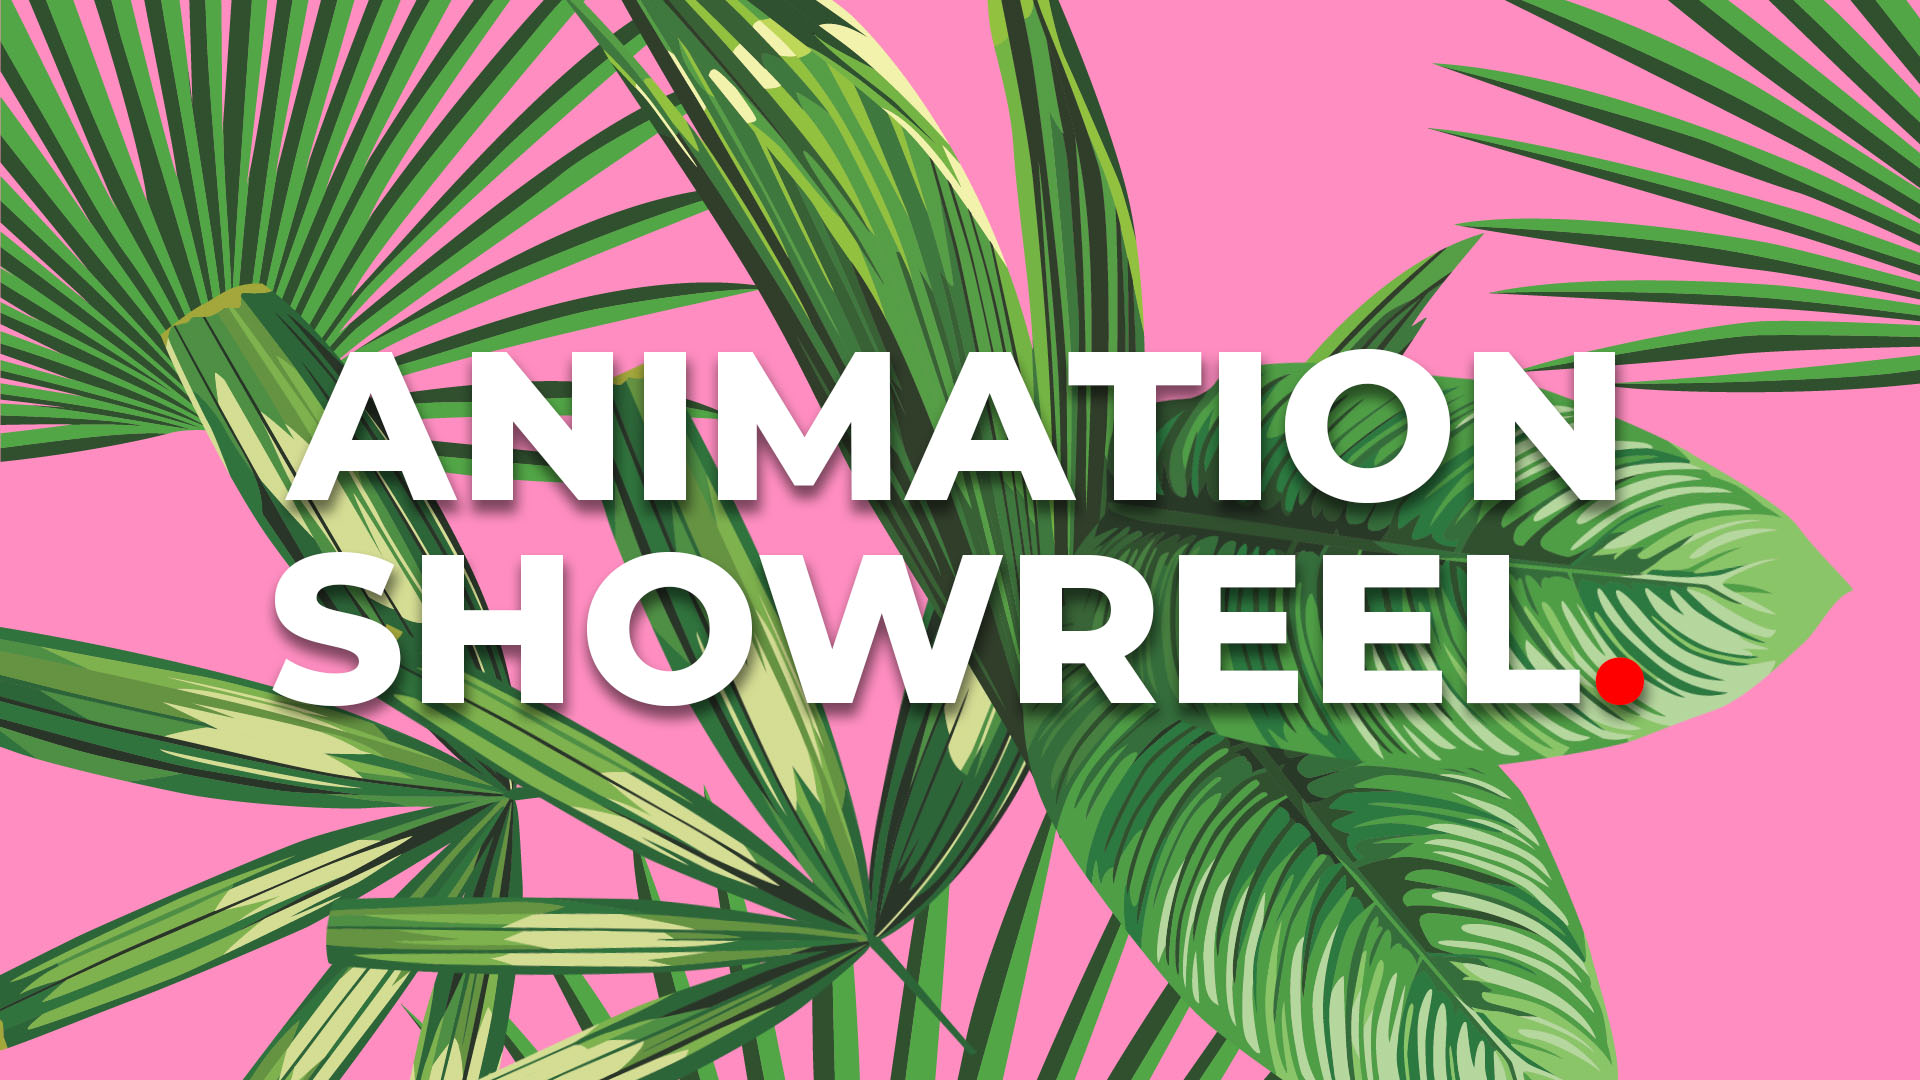 Accurate Animation Showreel 2020